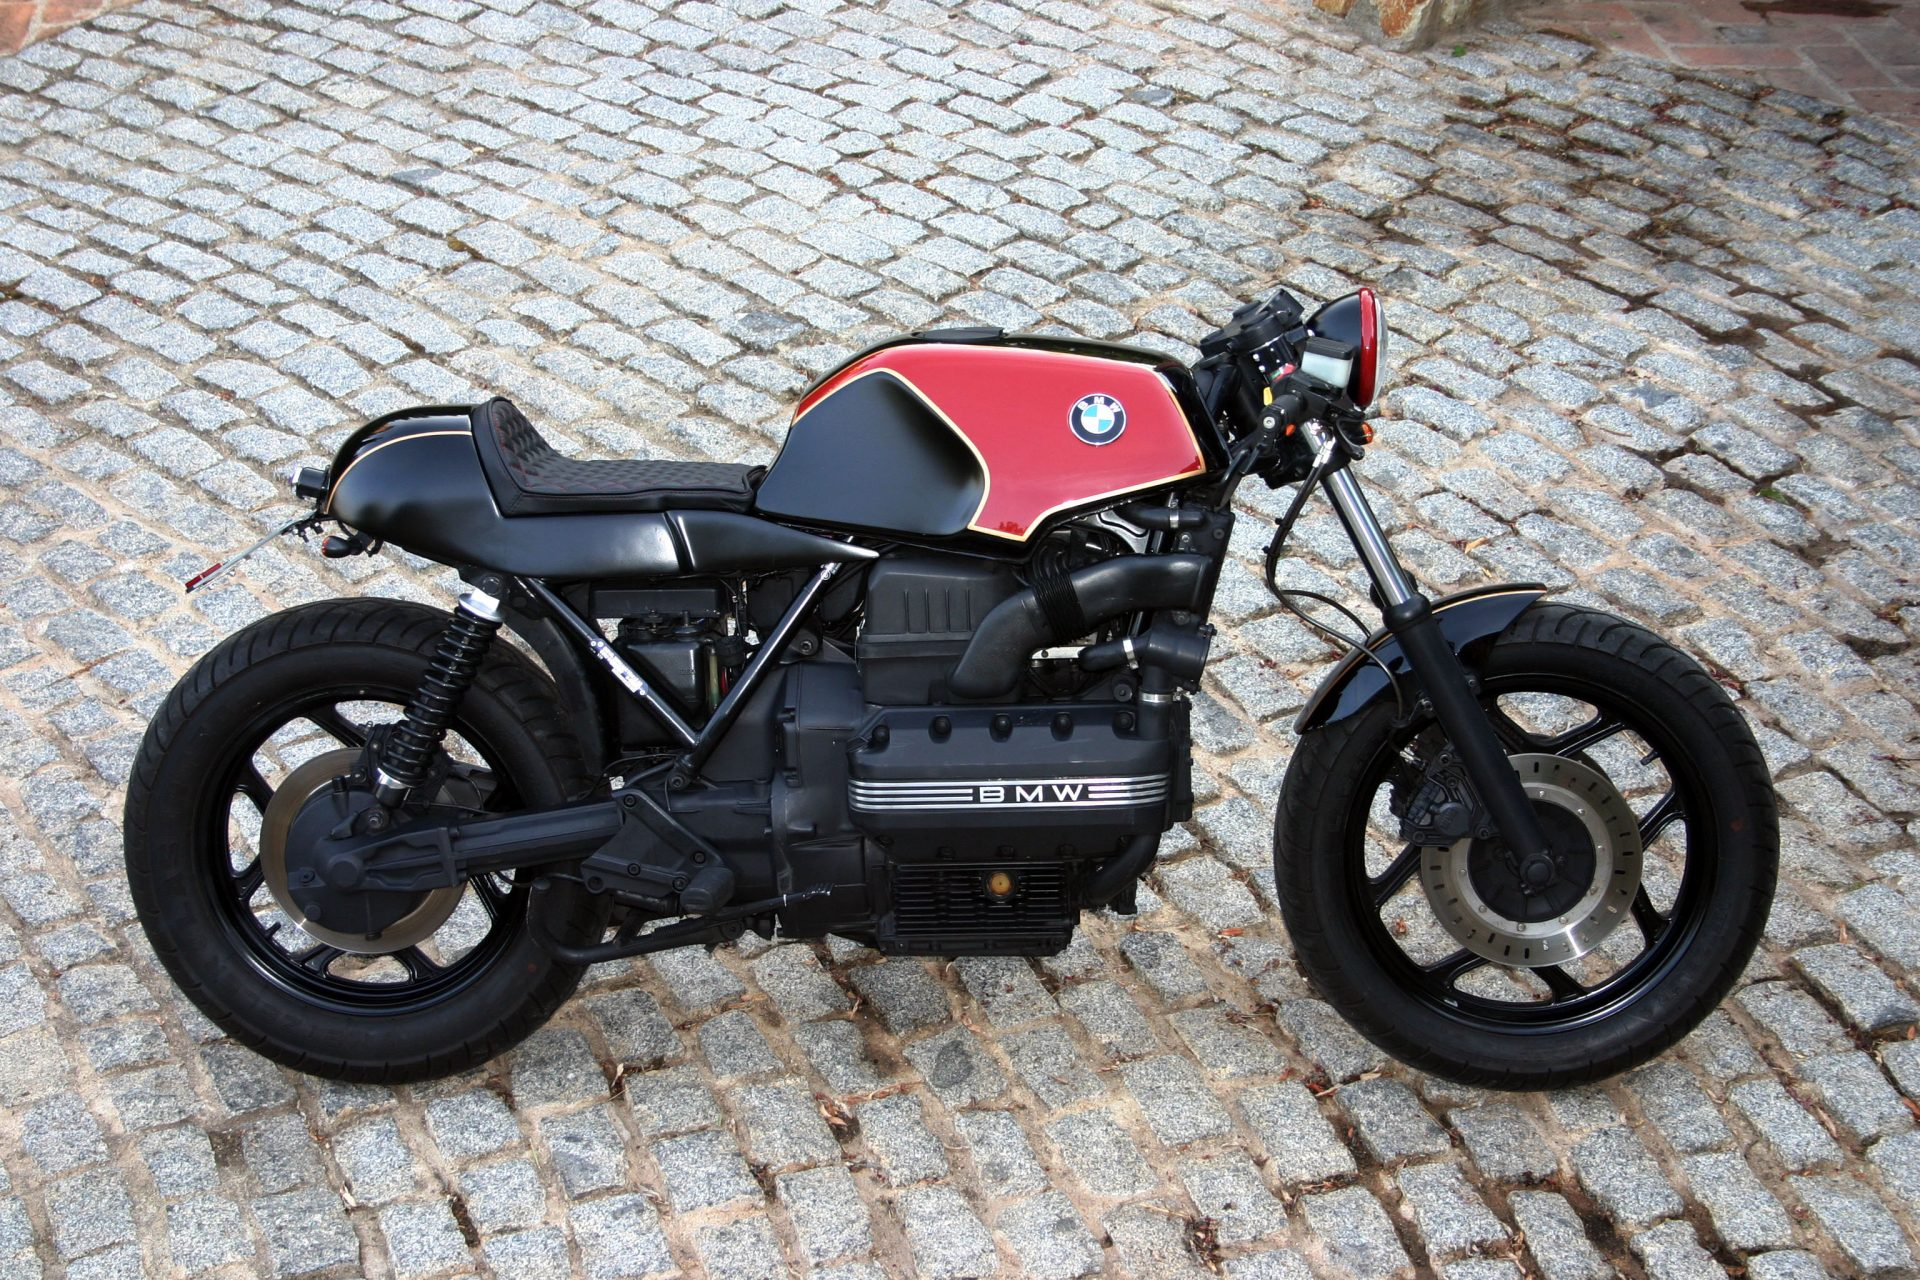 BMW K100 LT (The Biker Special) 4